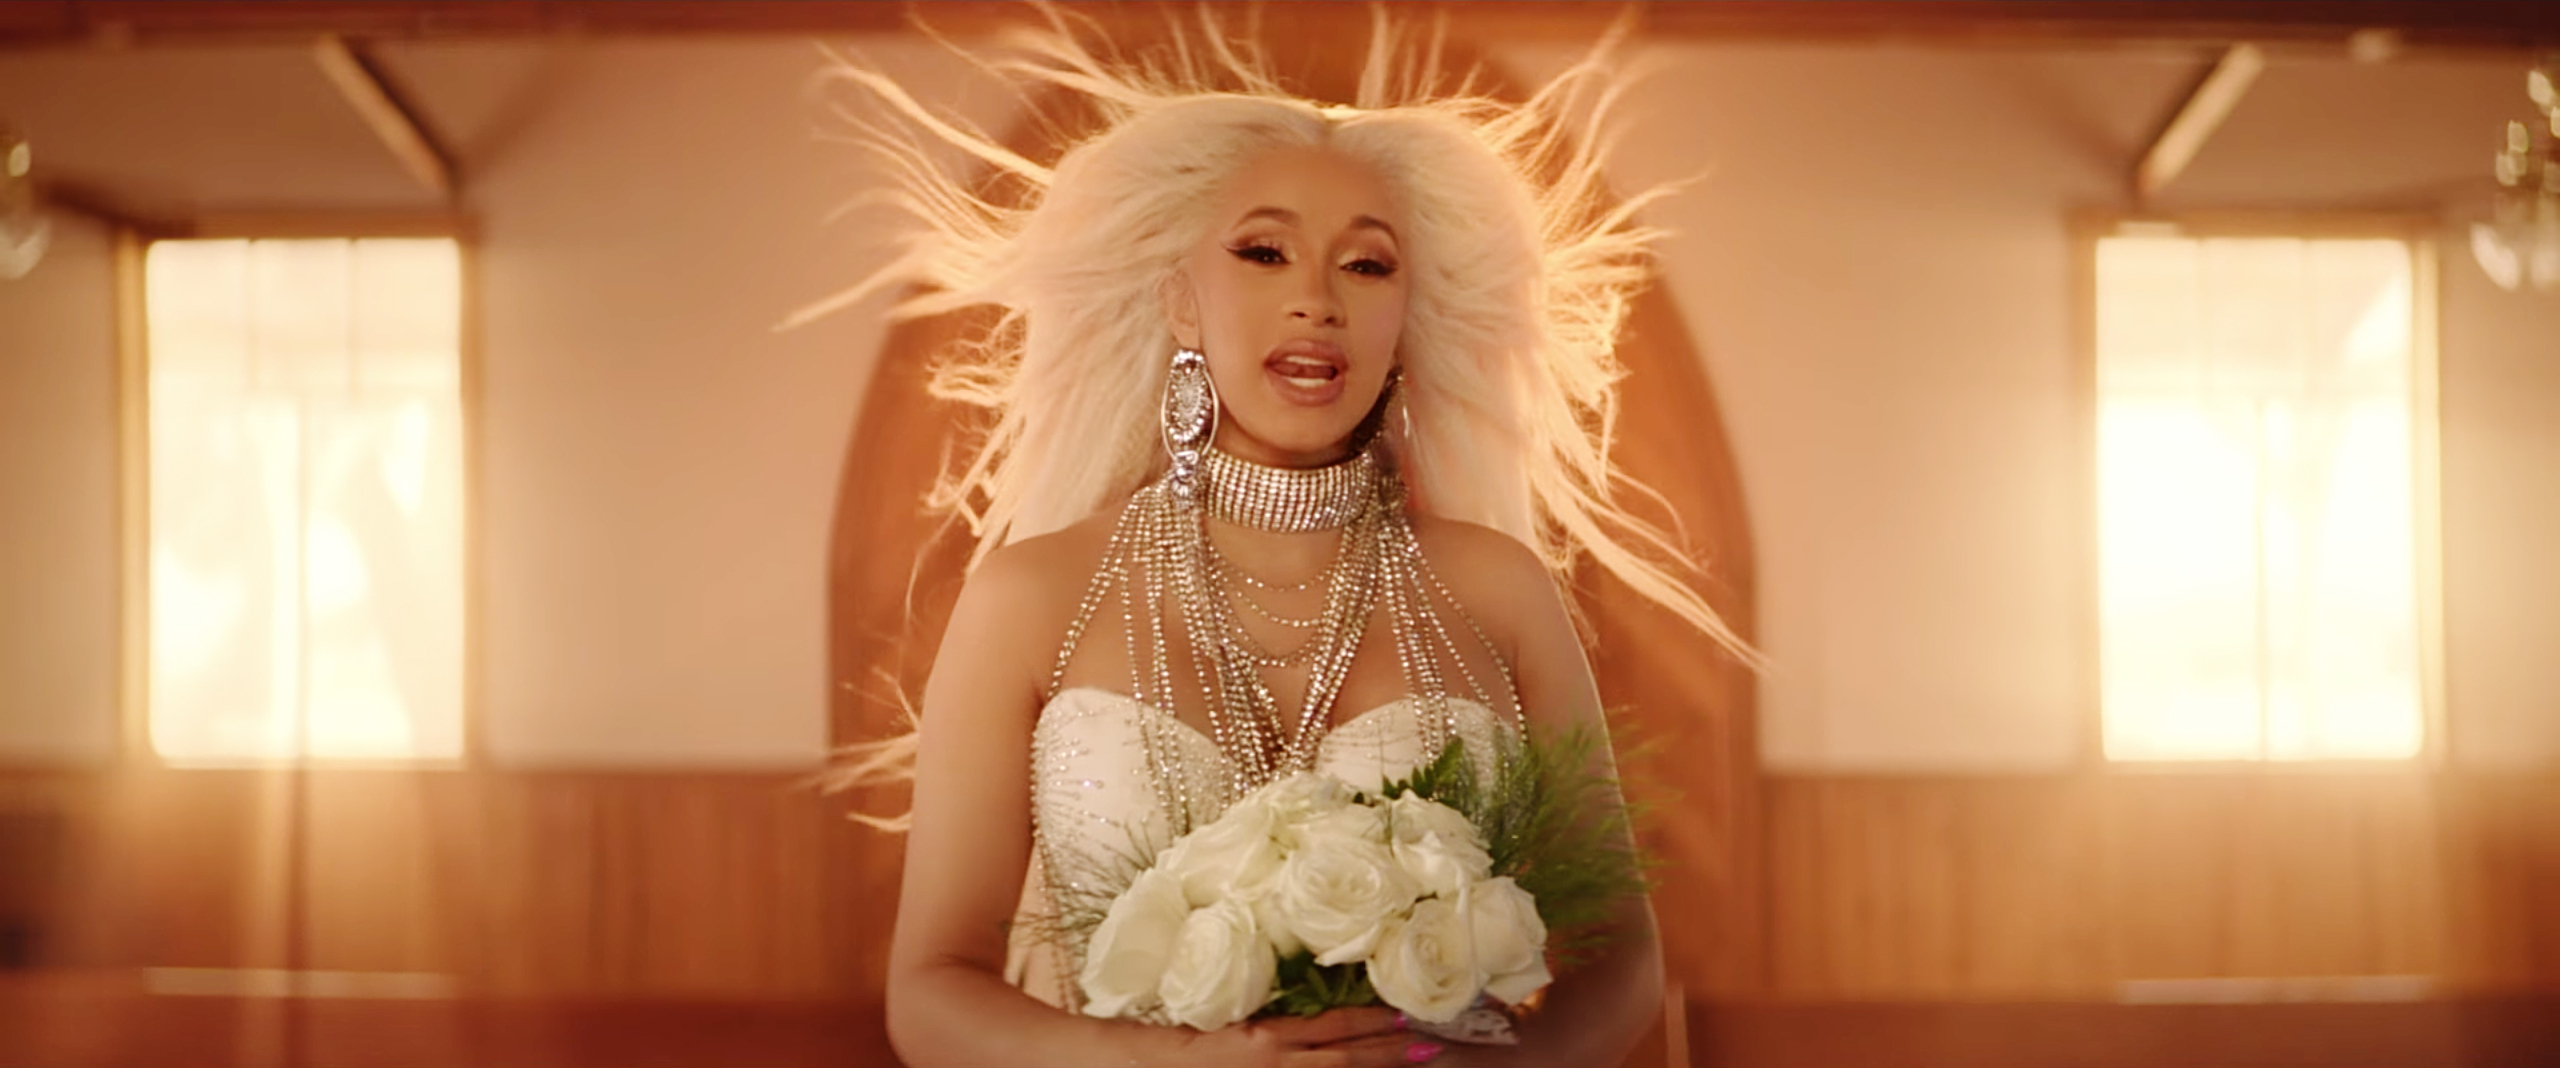 Cardi B Actually Heartbroken Despite Putting On Brave: Cardi B Is A Heartbroken Bride In New Video For 'Be